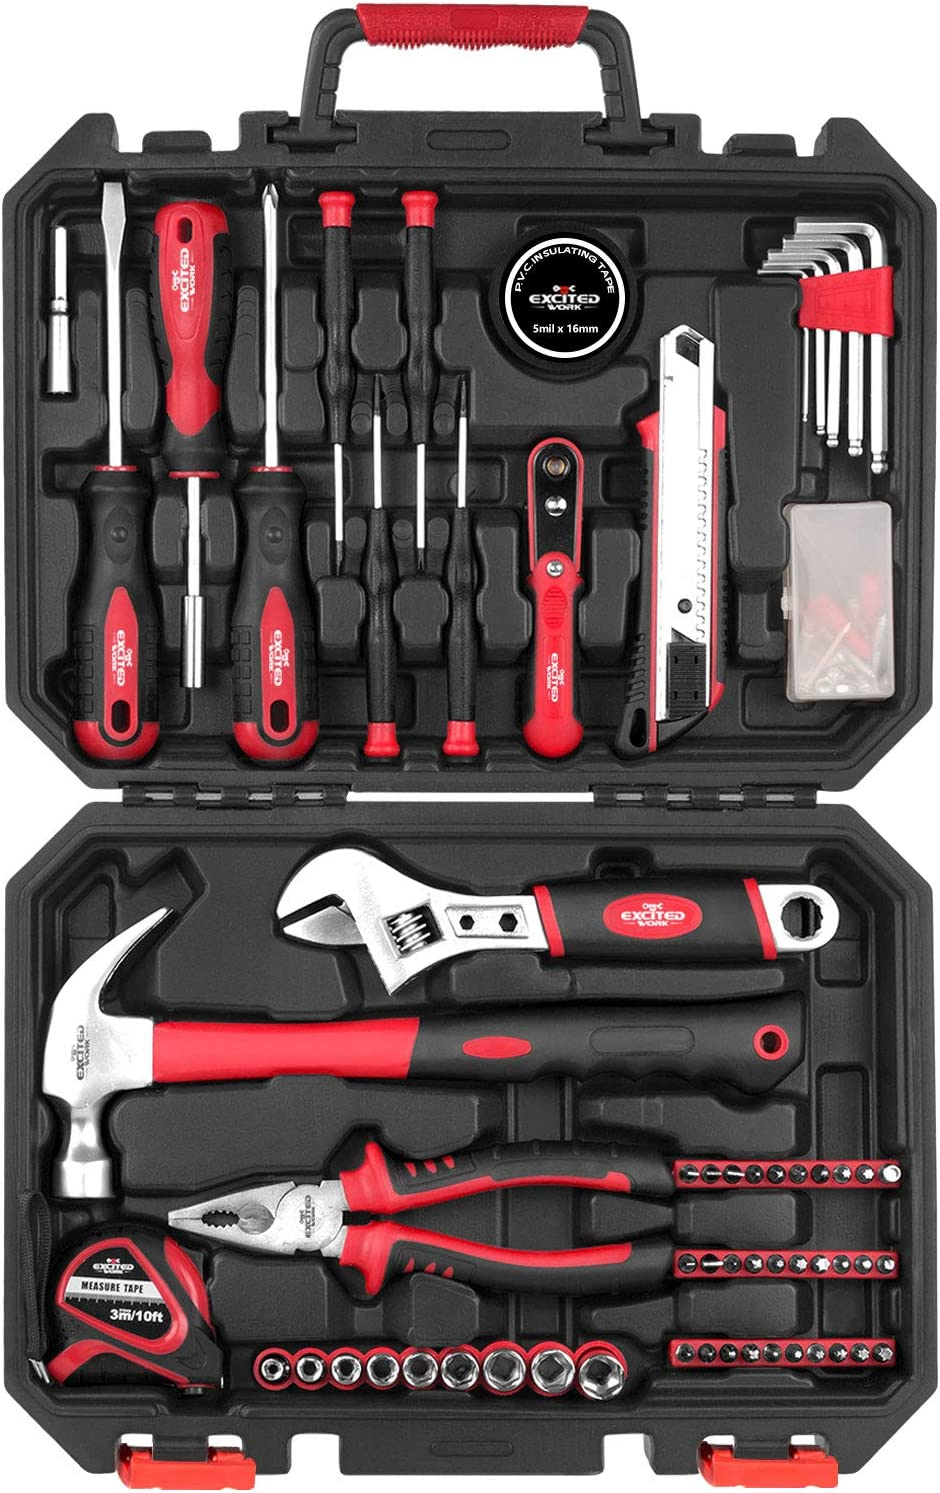 100 Piece Home Repair Tool Kit,EXCITED WORK General House Hand Tool Set with Plastic Storage Case- Socket Wrench Hammer